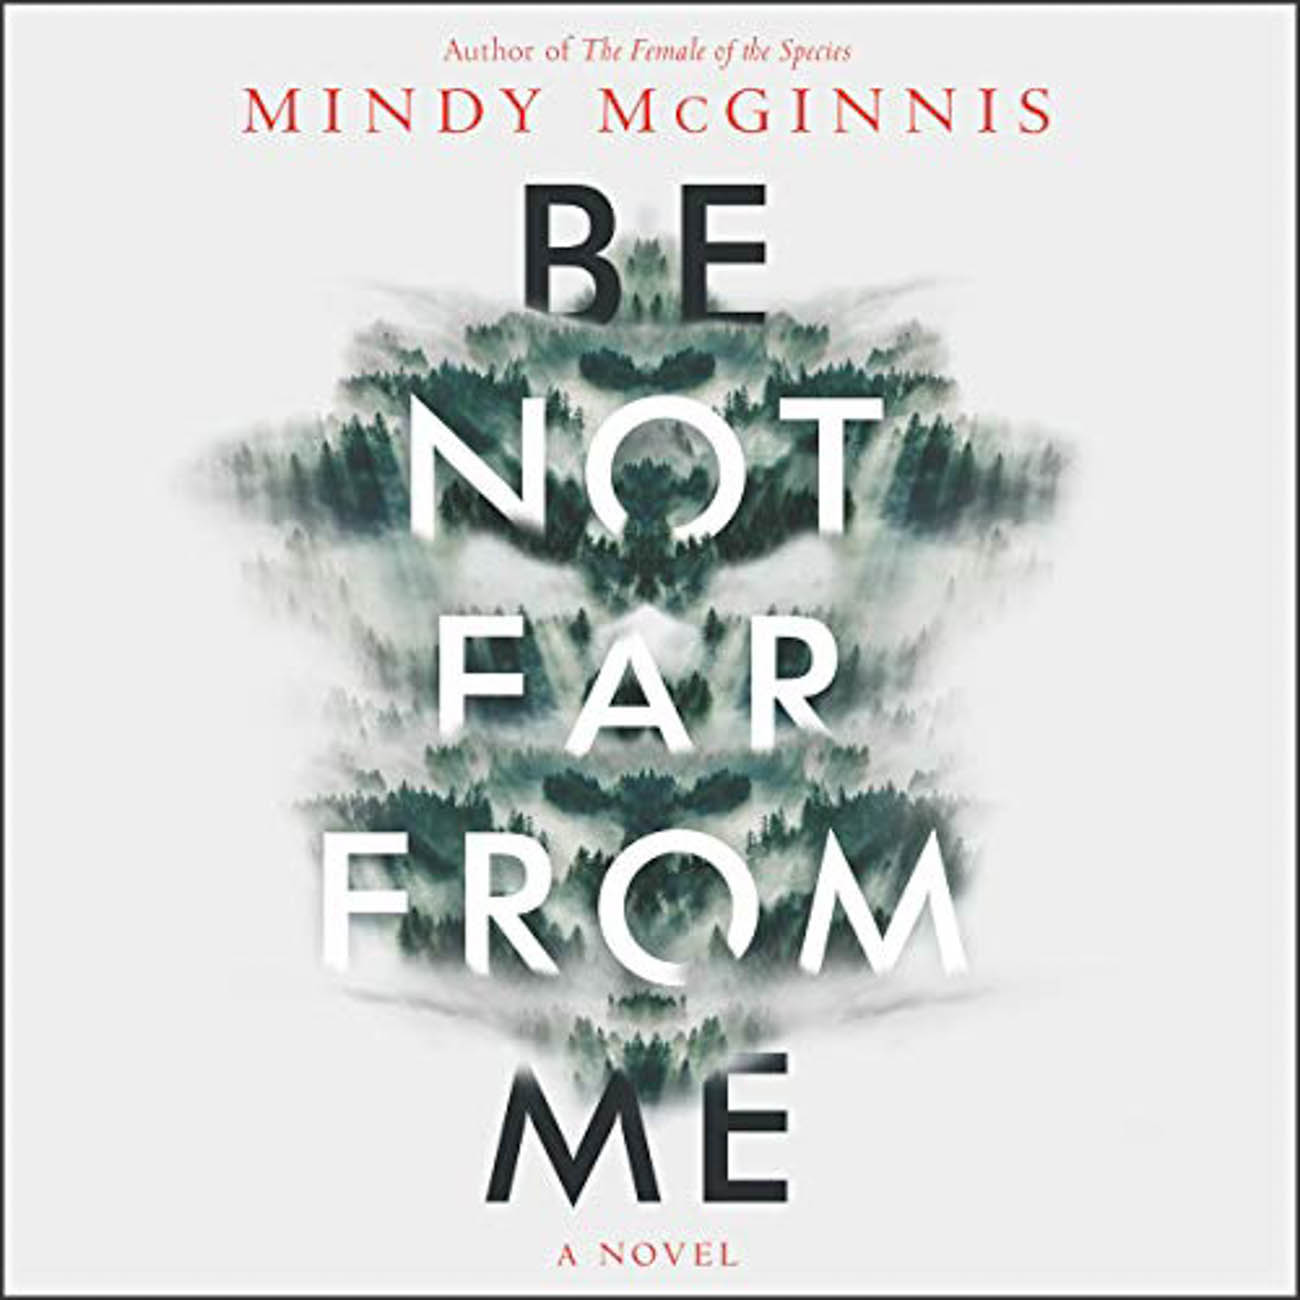 "When Ashley goes hiking in the Smokies with some friends in Mindy McGinnis', ""Be Not Far From Me"", a fall into a ravine leaves her lost, alone, and needing to find a way to survive with an infection in her leg. / Image courtesy of Audible // Published: 3.23.20"